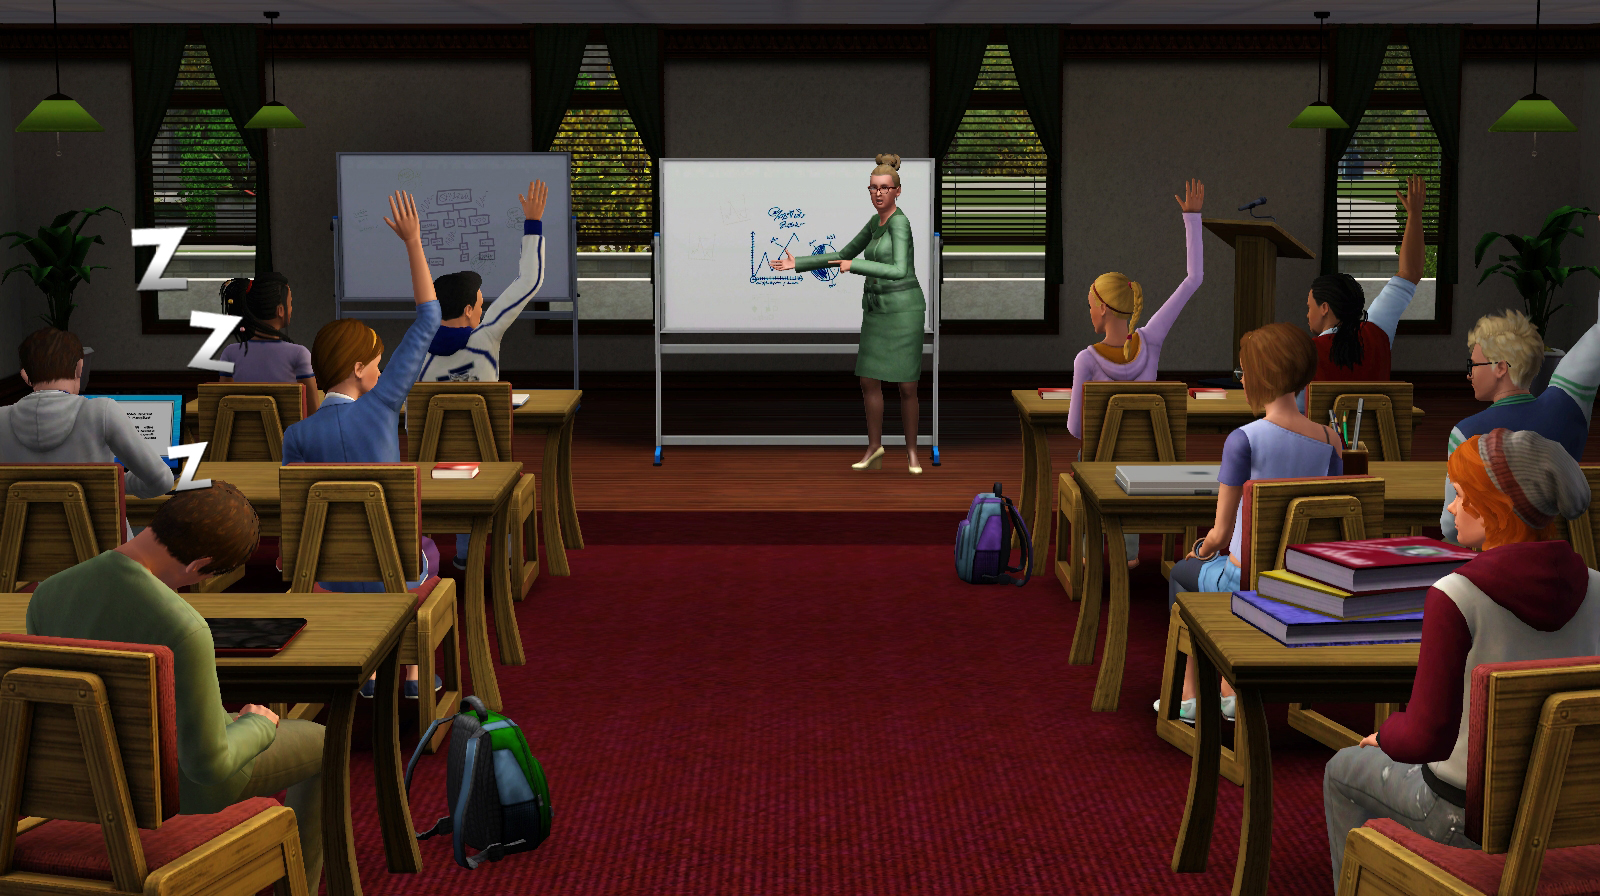 The sims 3 university life review college life as i for Au maison online shop